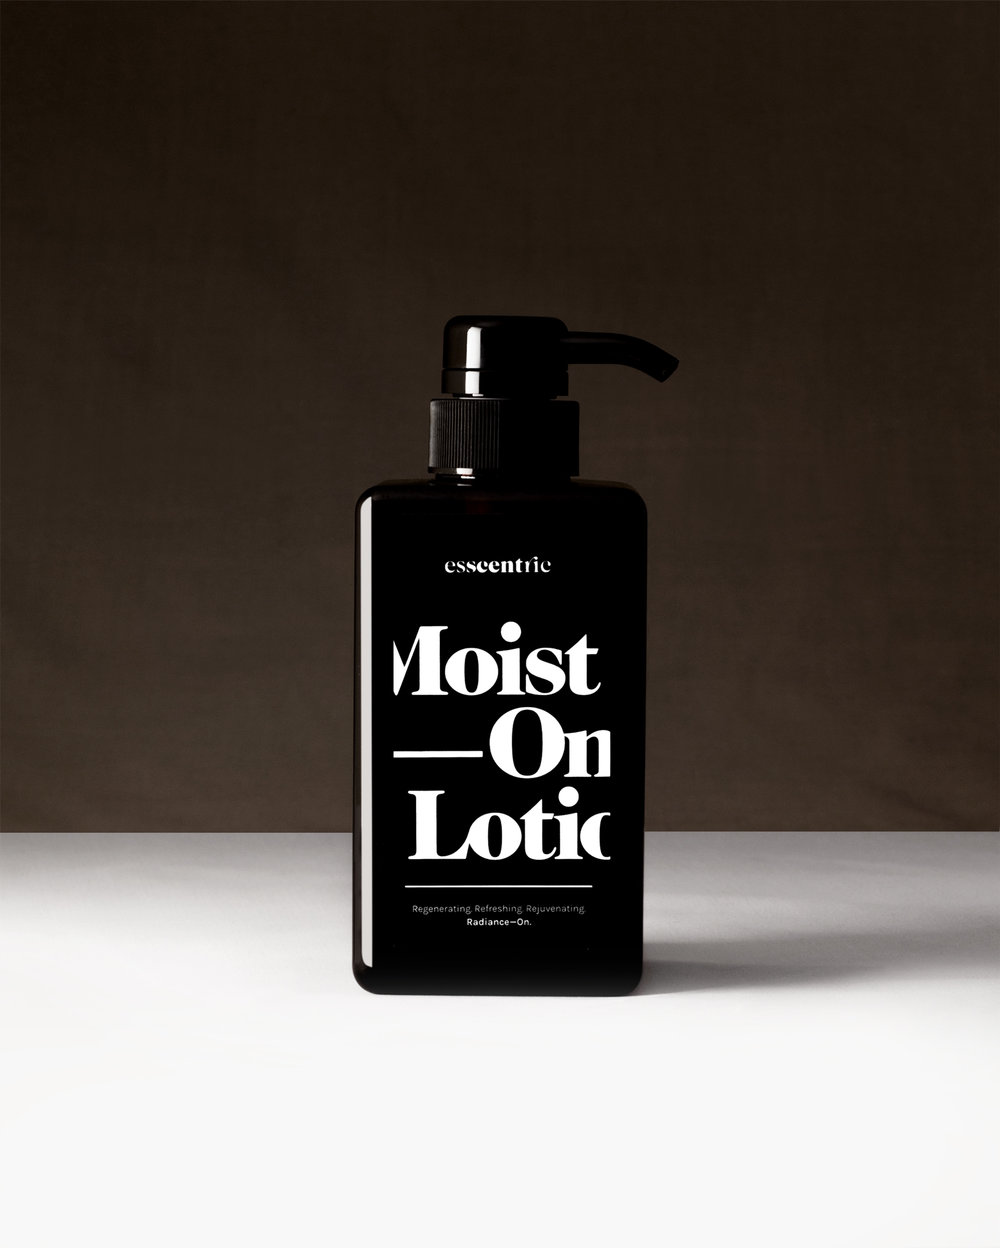 Moist-On Lotion